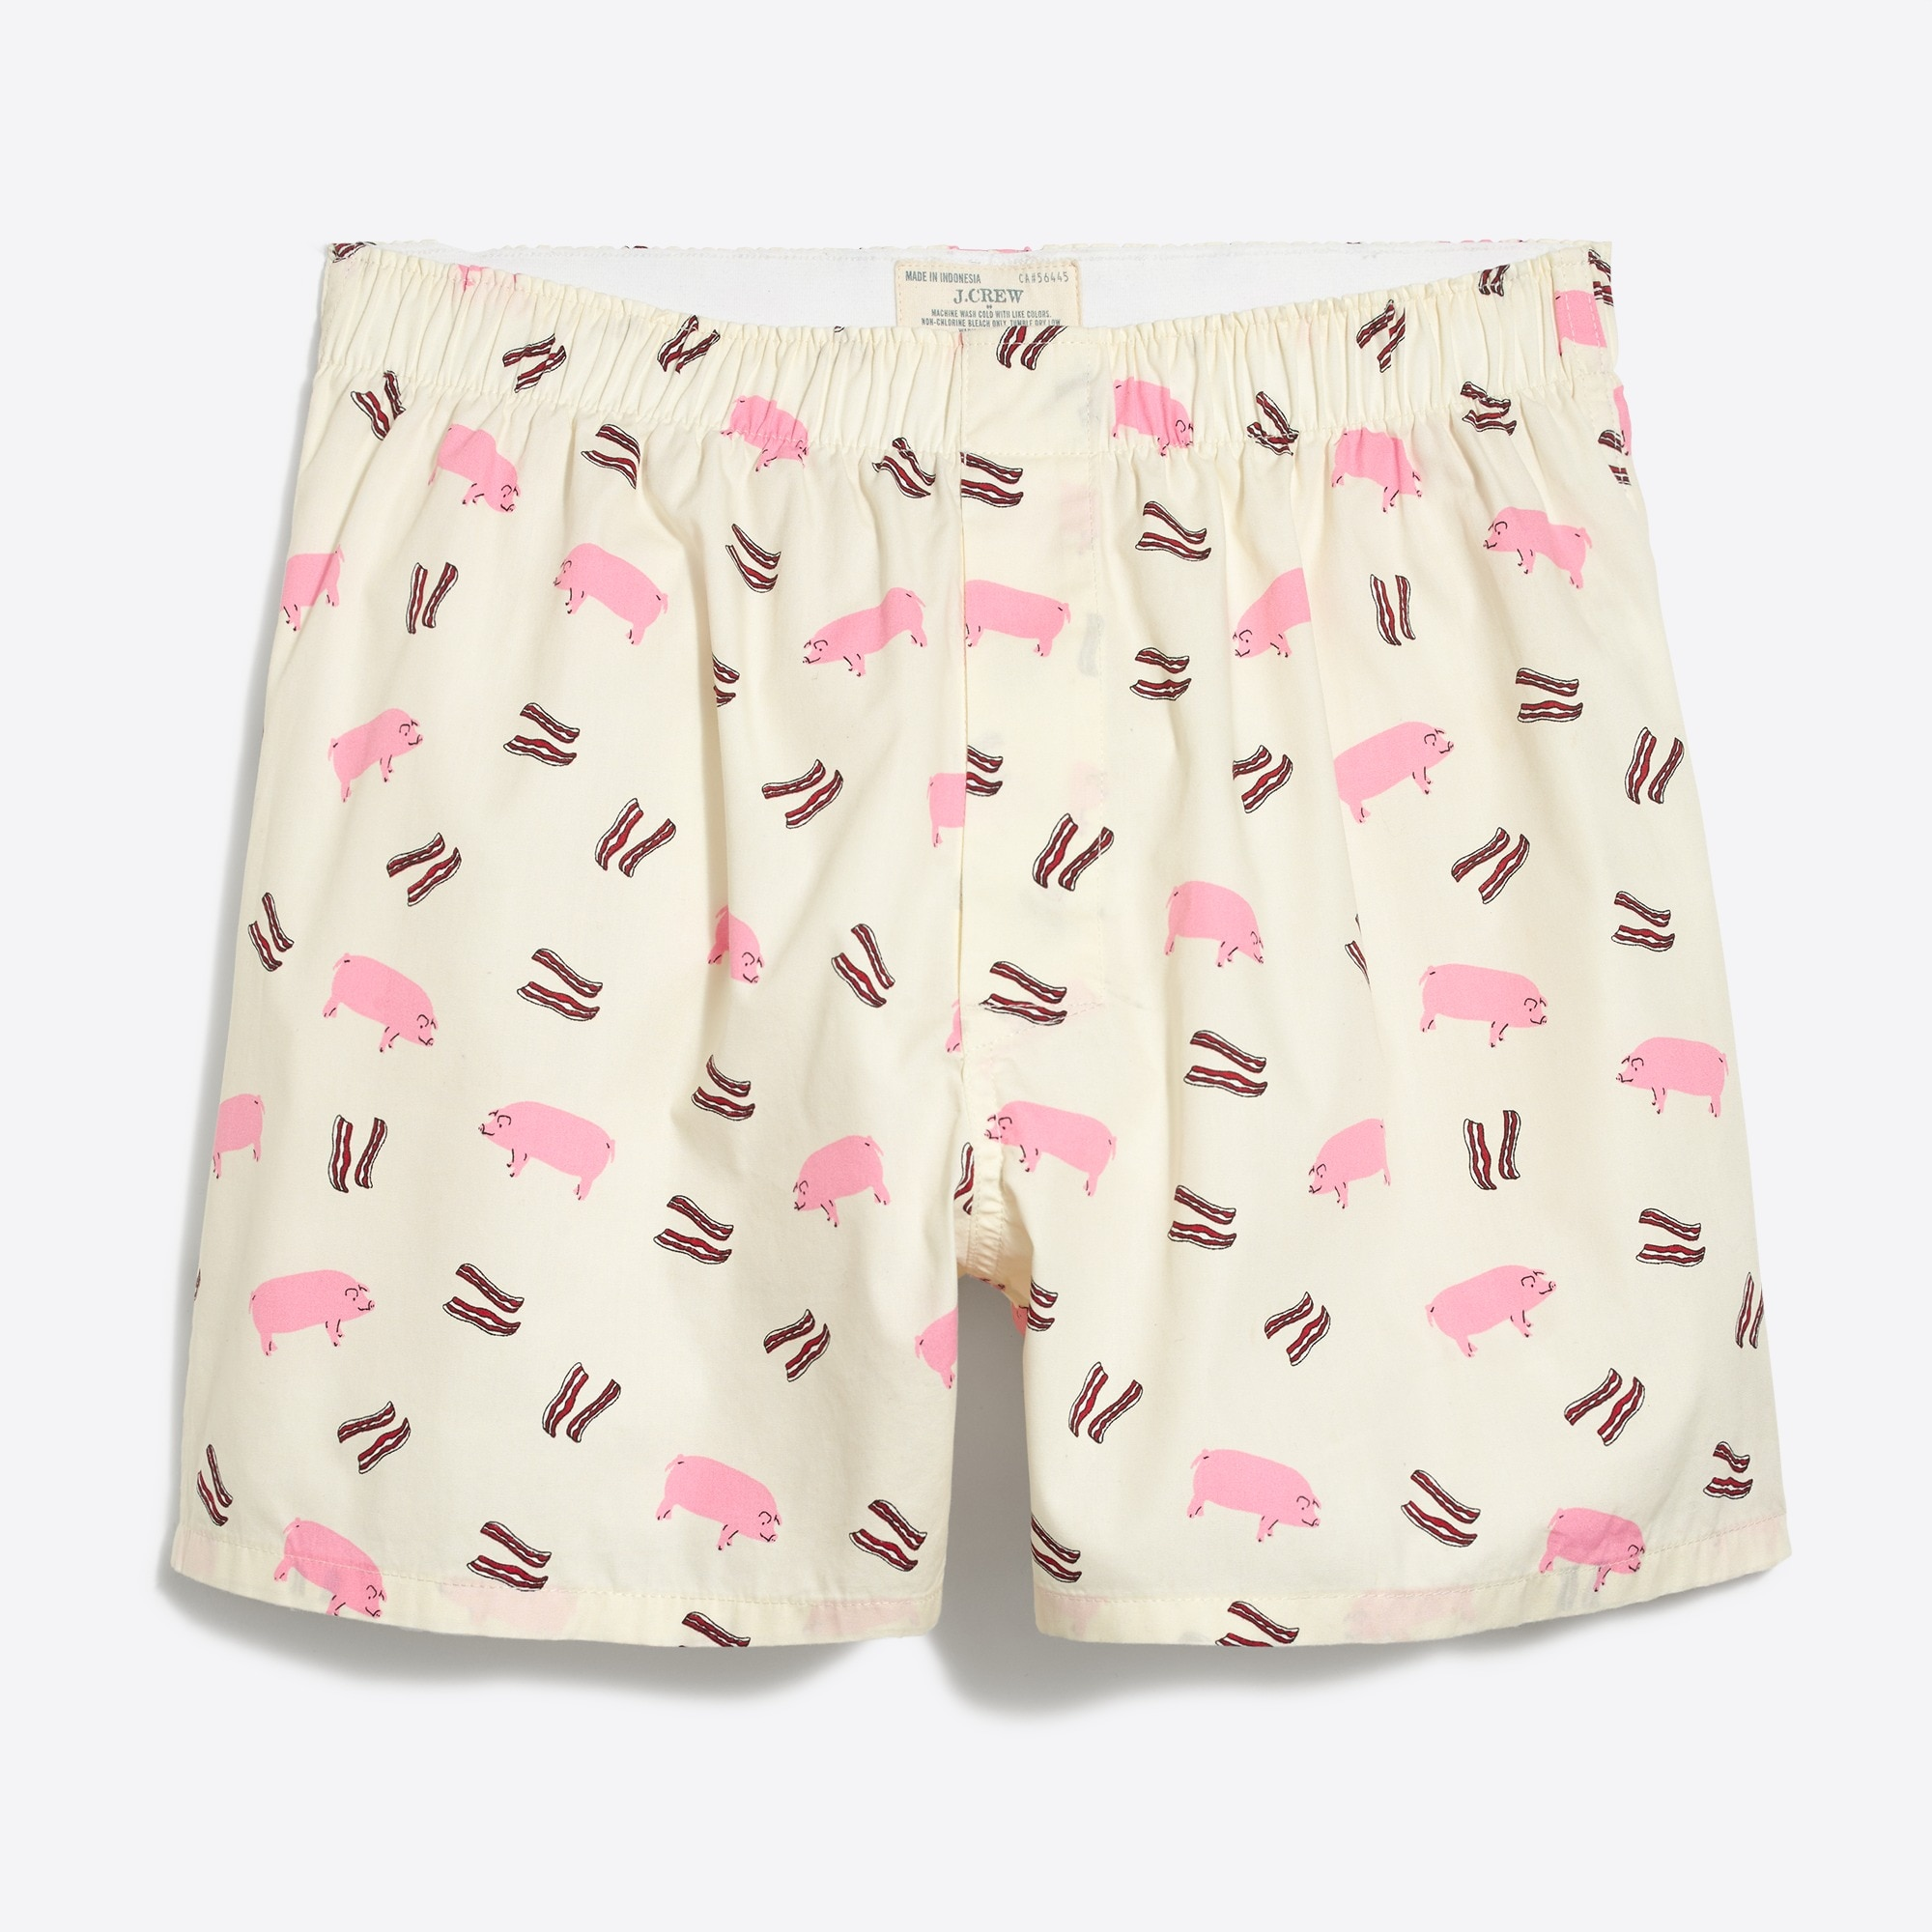 j.crew mercantile pig and bacon boxers : factorymen mercantile woven boxers